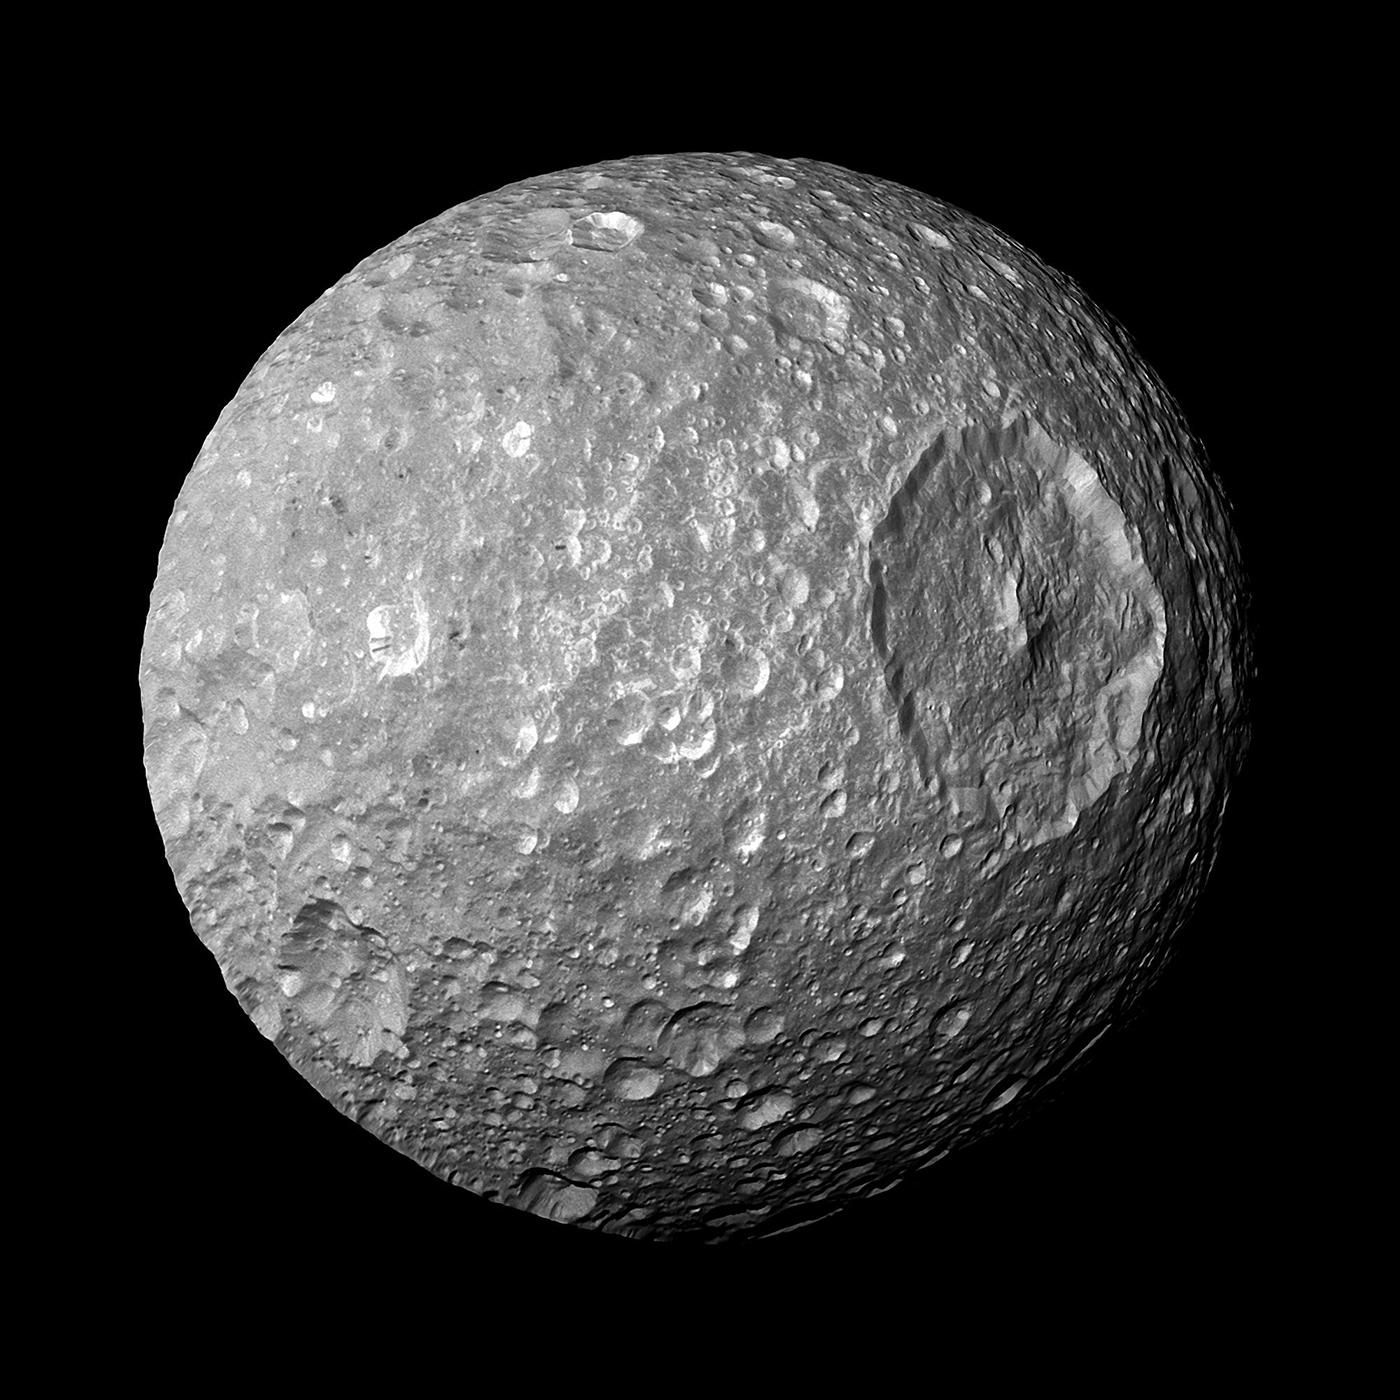 Saturn's moon Mimas looks like the Death Star from 'Star Wars.' Image: Courtesy NASA/JPL/Space Science Institute